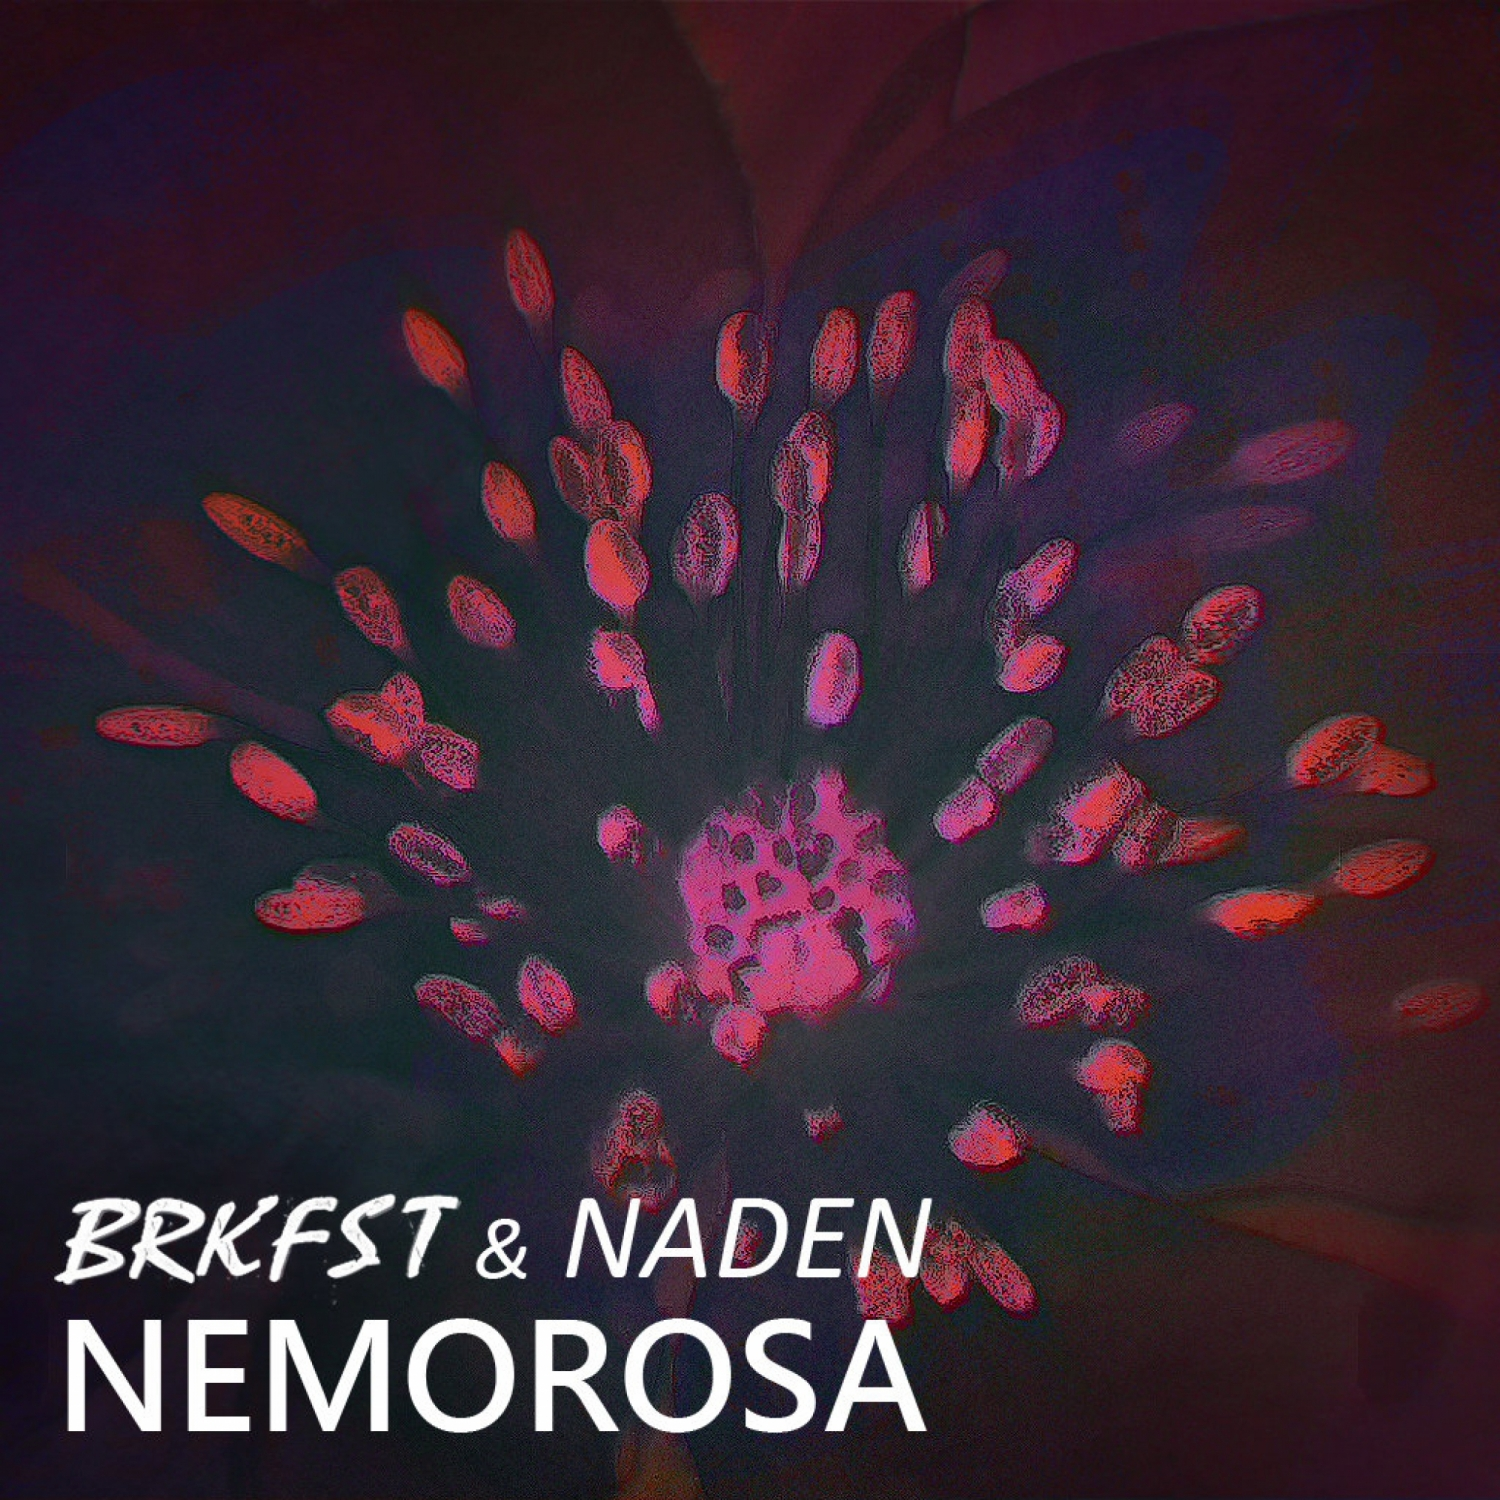 Breakfast & BRKFST & Naden - Nemorosa (Original Mix)